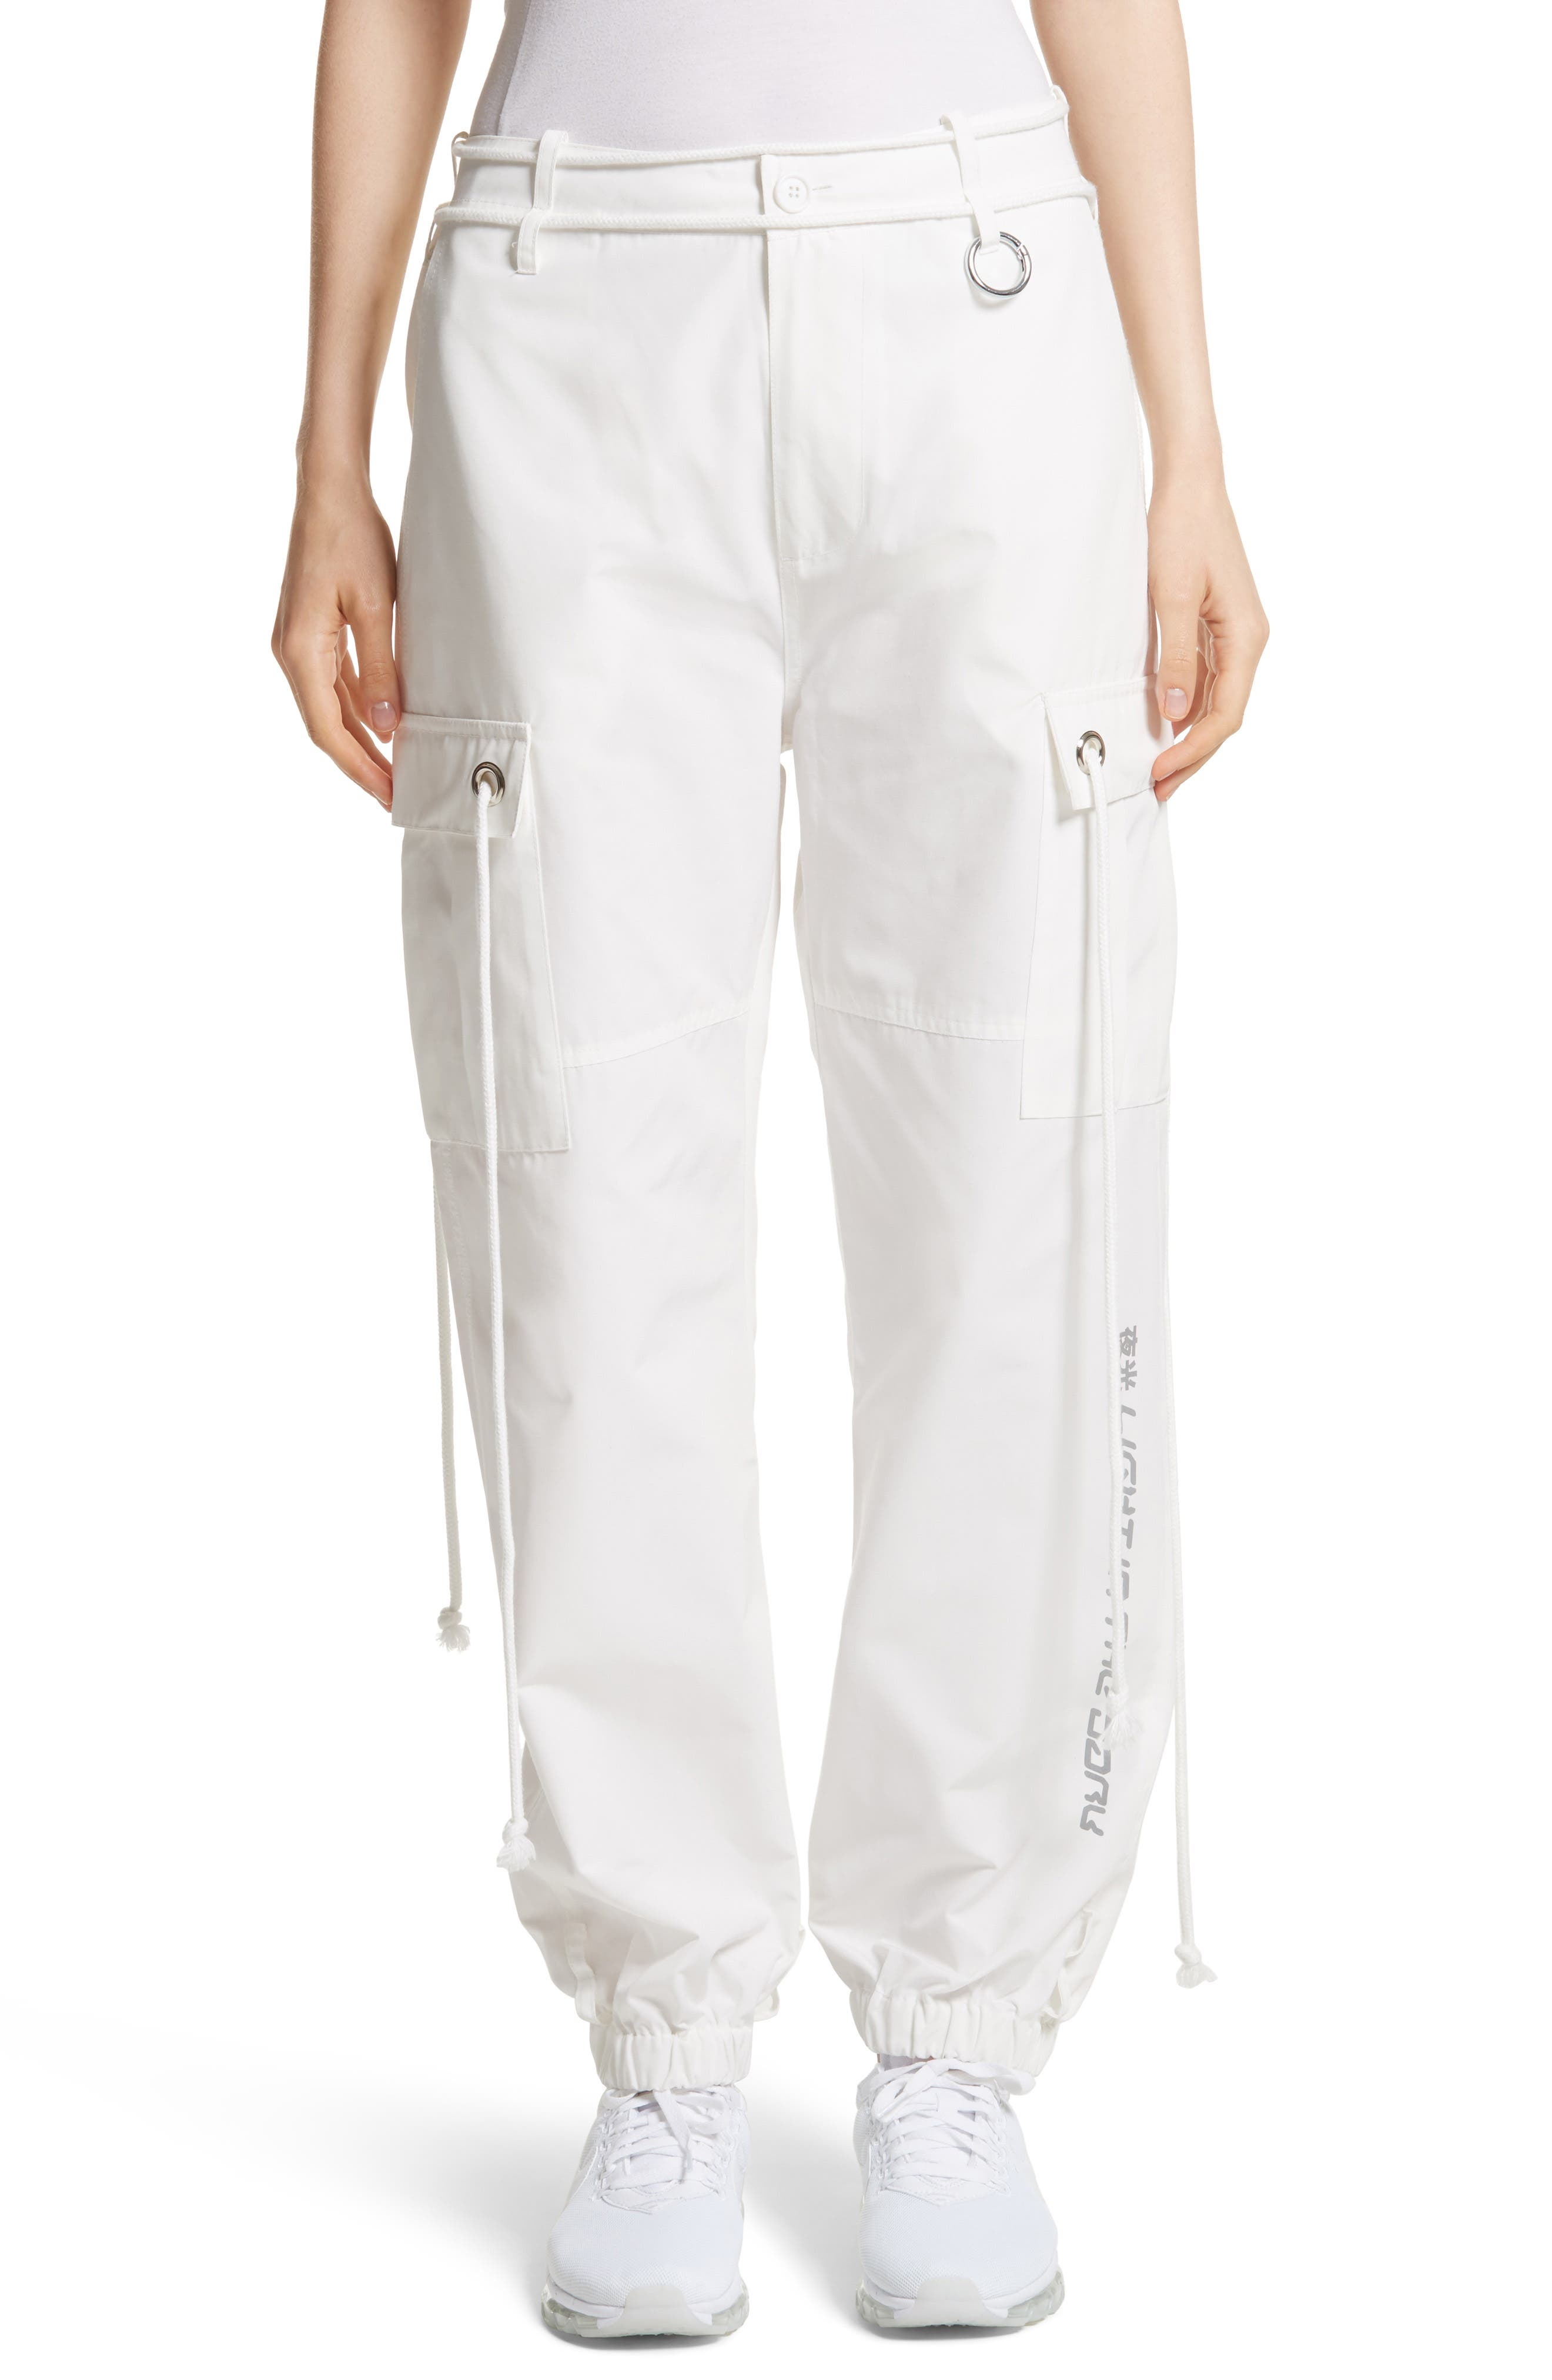 Light in the Dark Cargo Pants,                             Main thumbnail 1, color,                             100